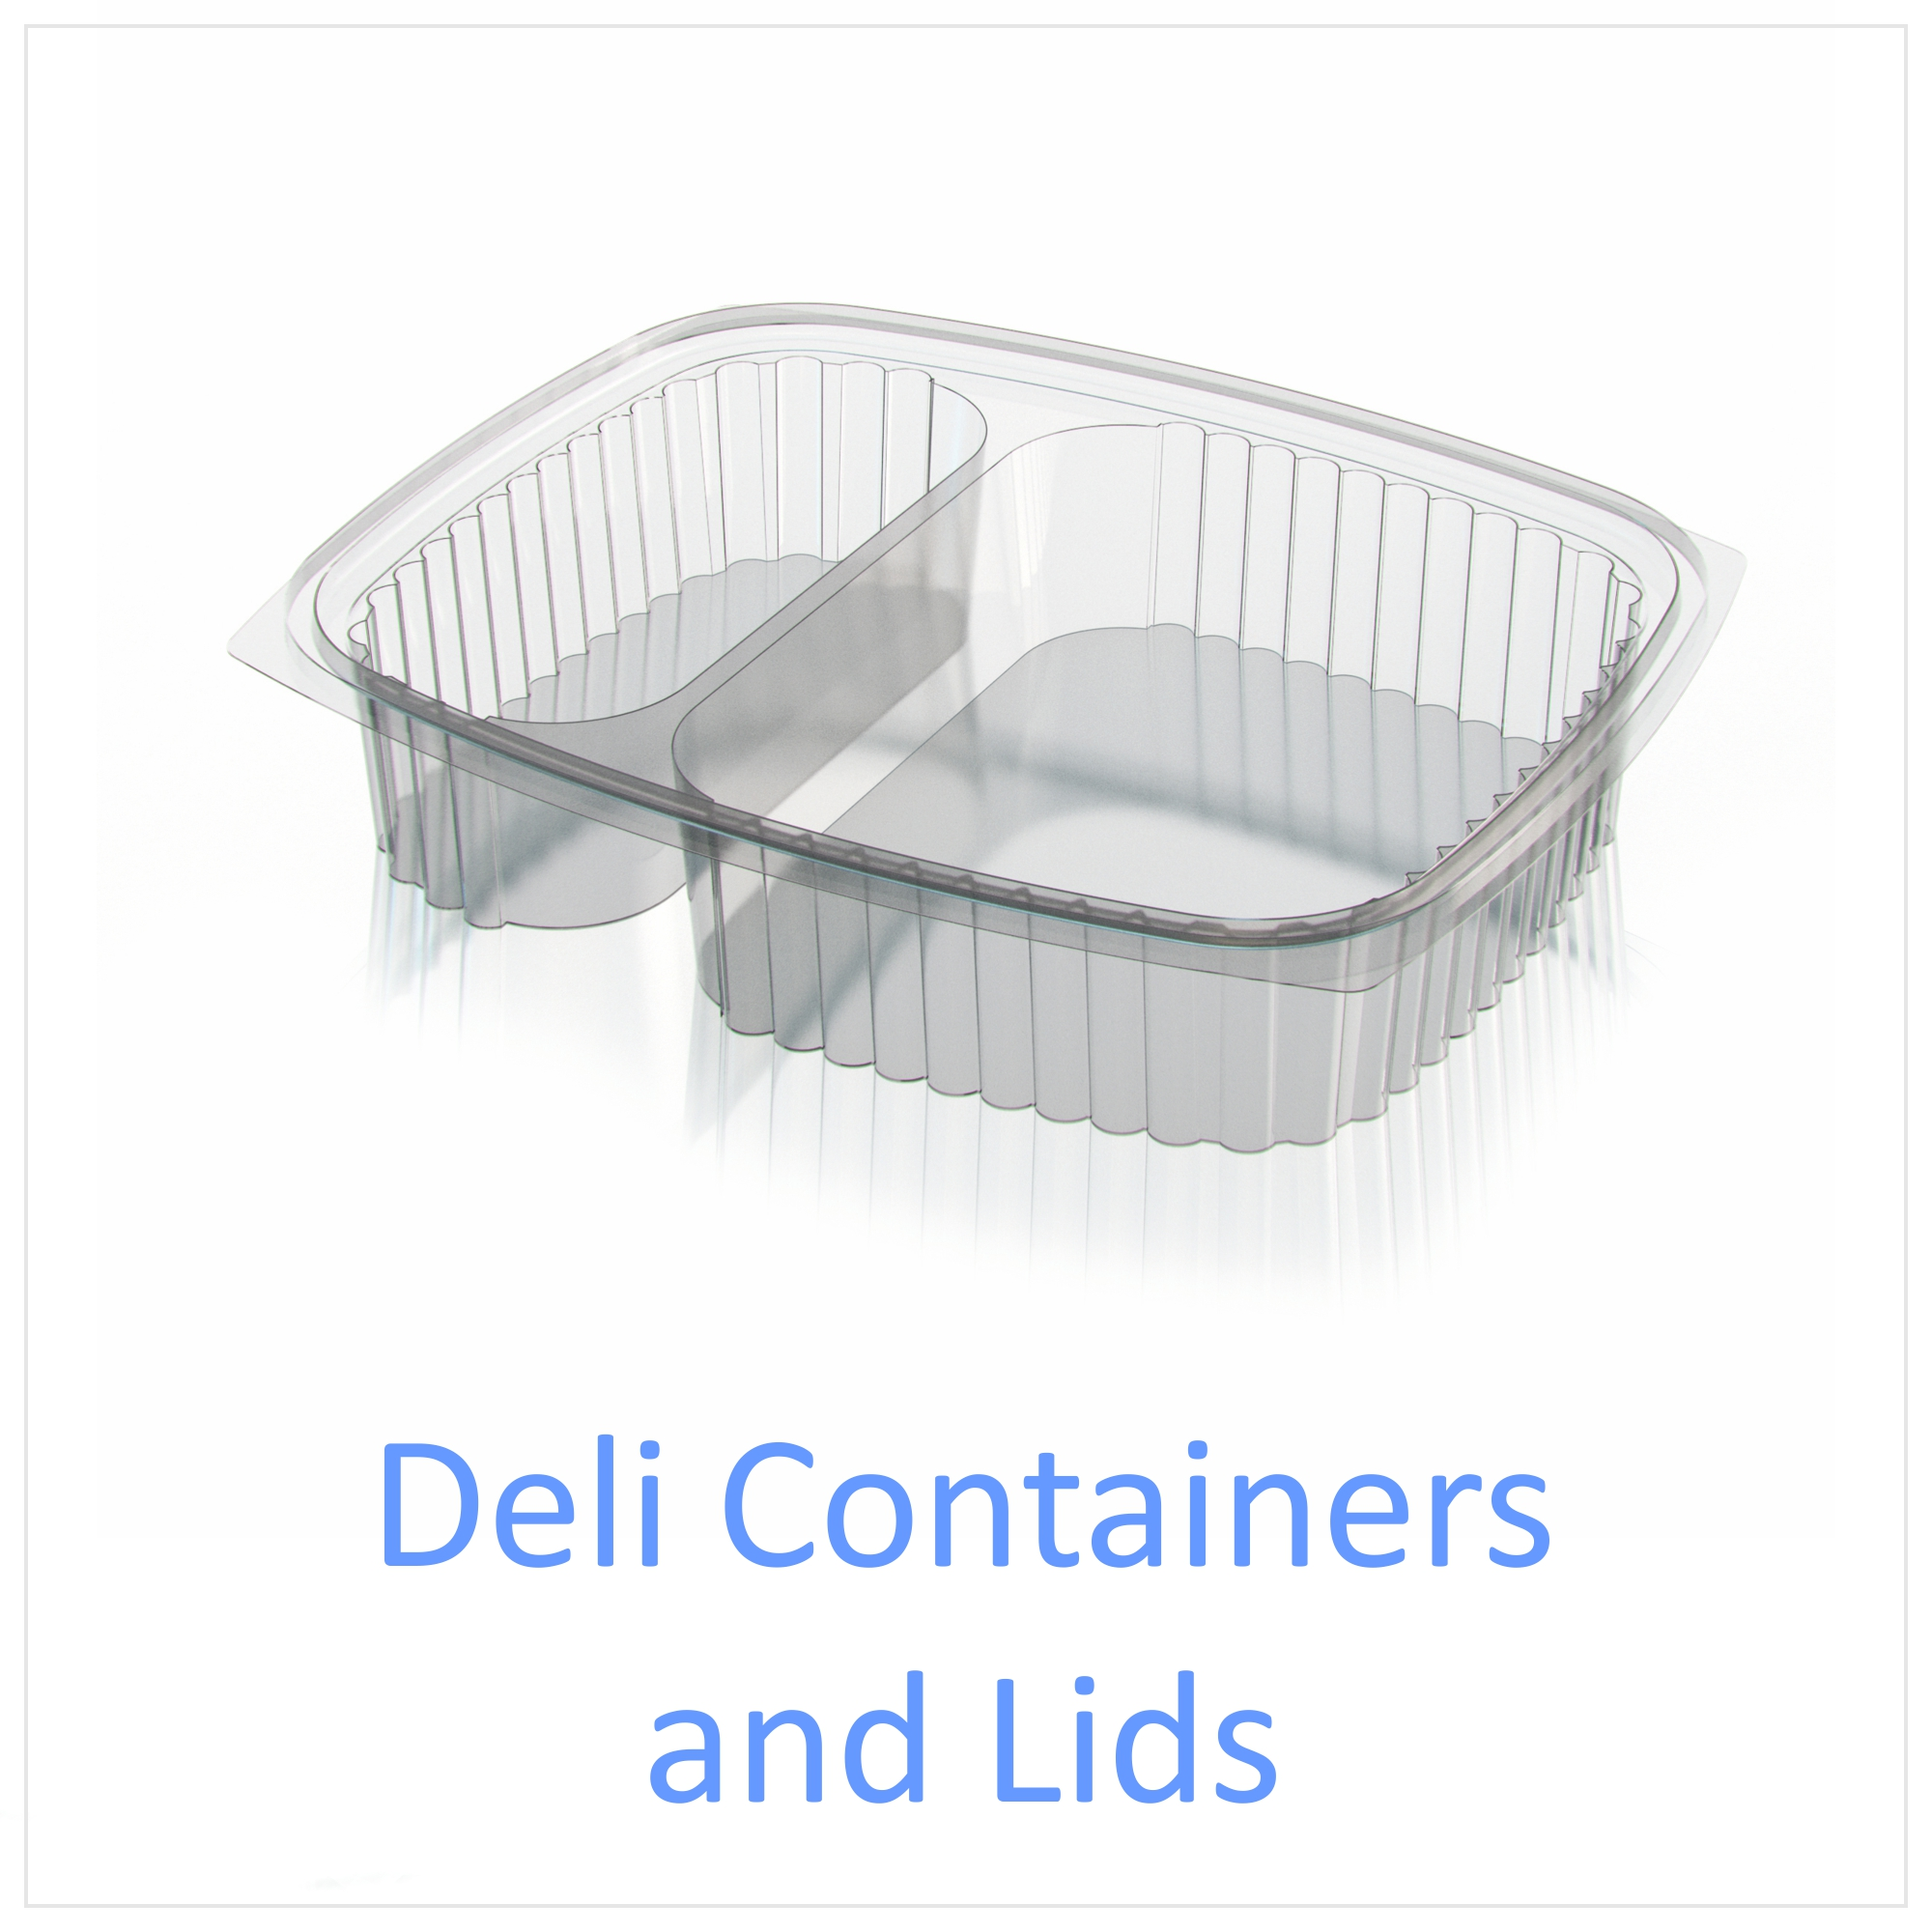 Deli Containers and Lids